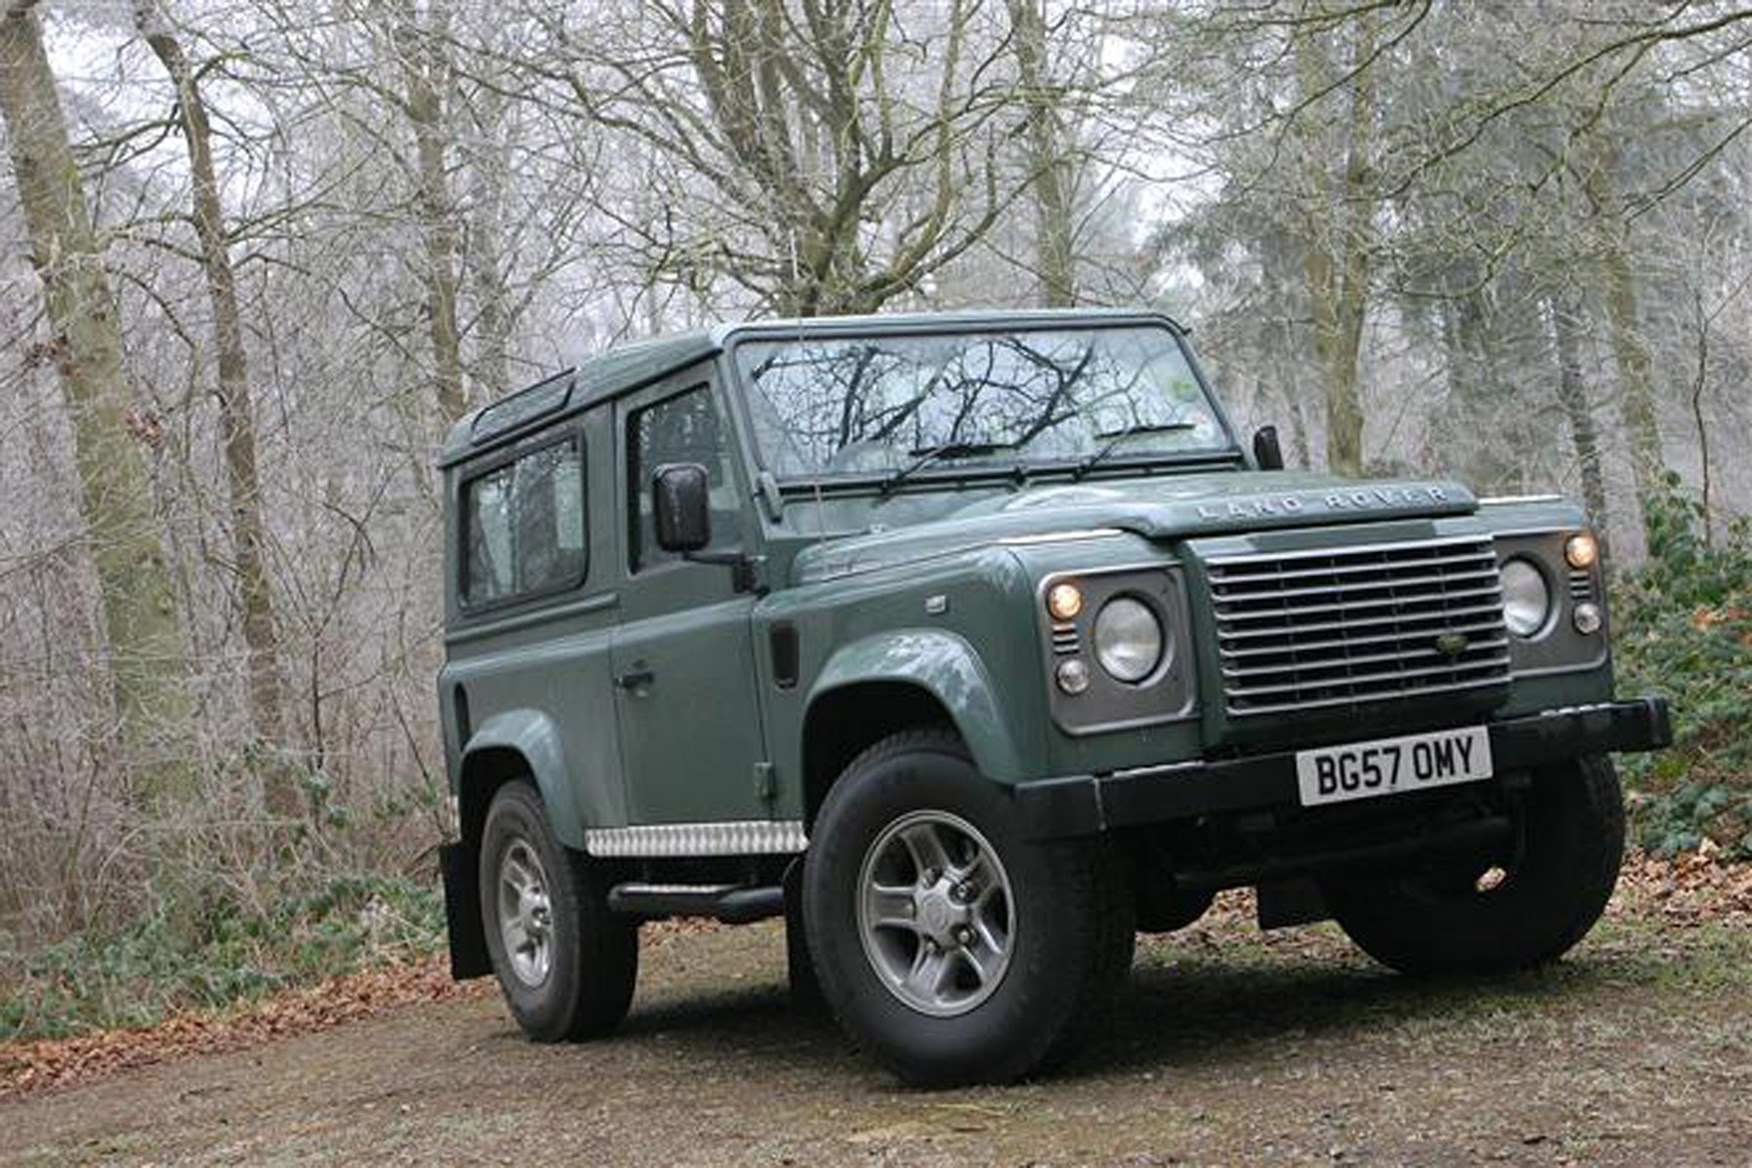 Land Rover Defender 2007-2016 review on Parkers Vans - exterior